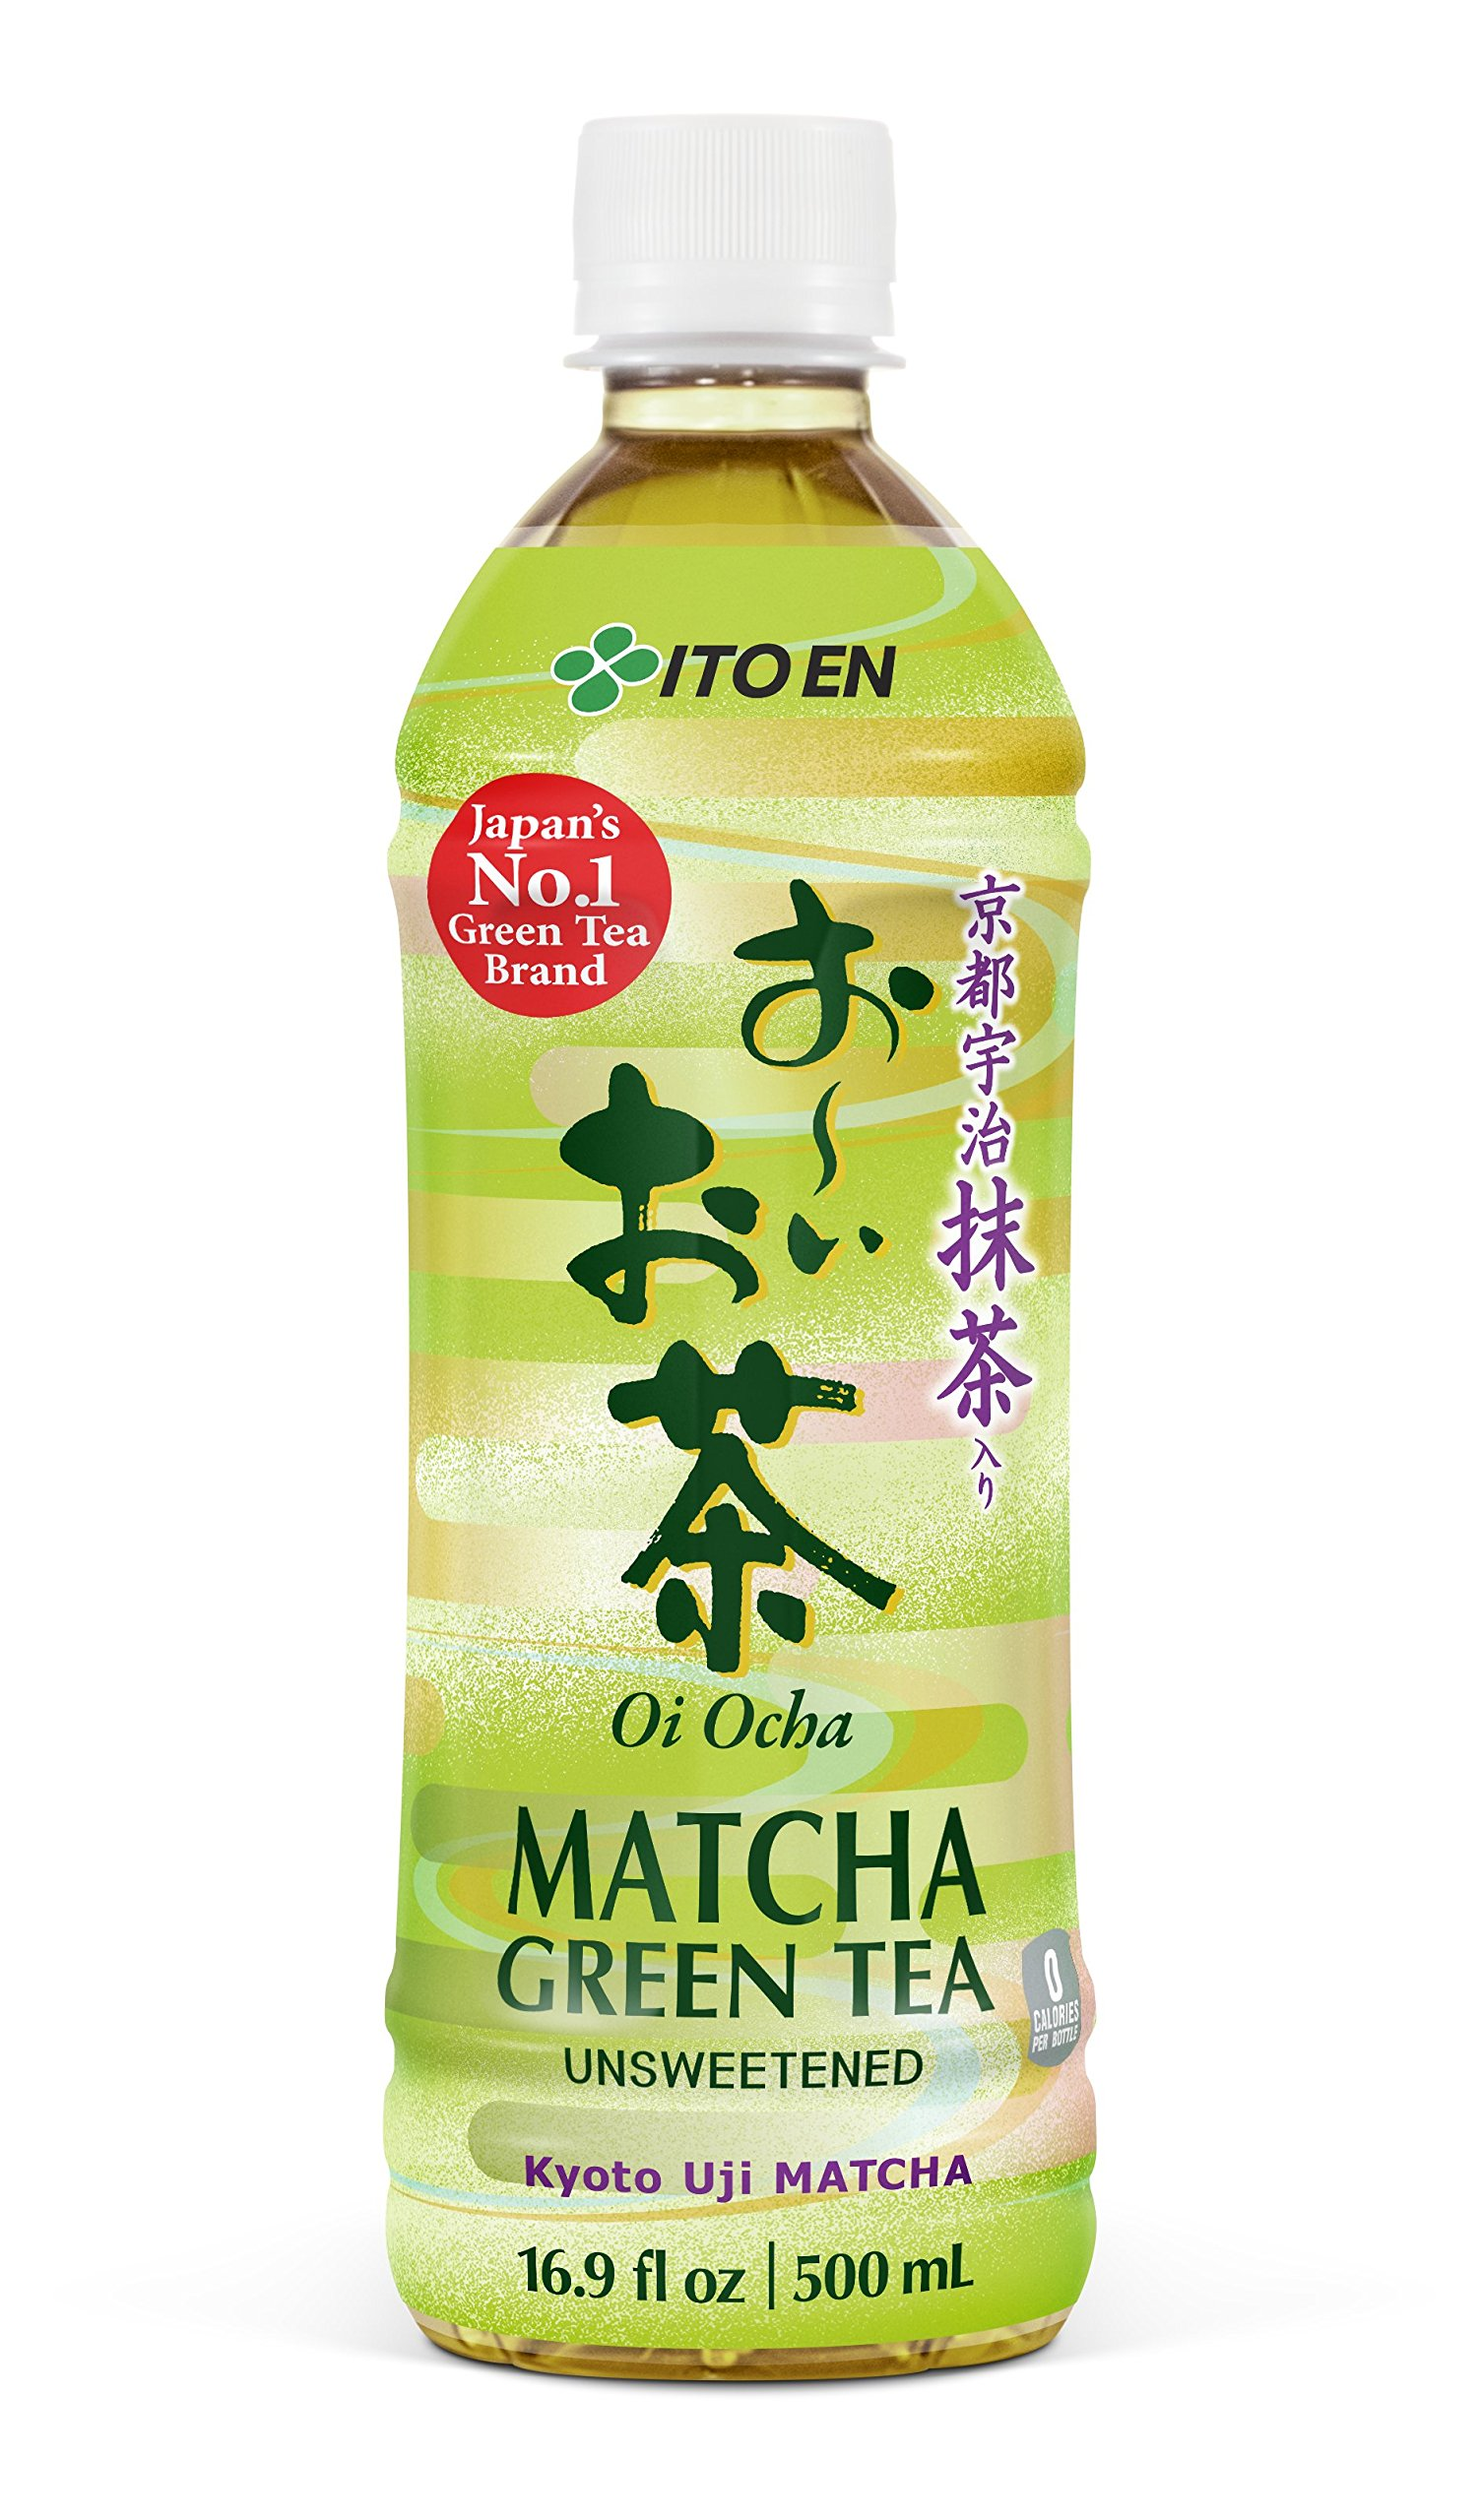 Oi Ocha Matcha Green Tea Unsweetened, 16.9 Ounce Bottle (Pack of 12), No Sugar, No Artificial Sweeteners, Antioxidant Rich, Authentic Japanese Green Tea, Caffeinated